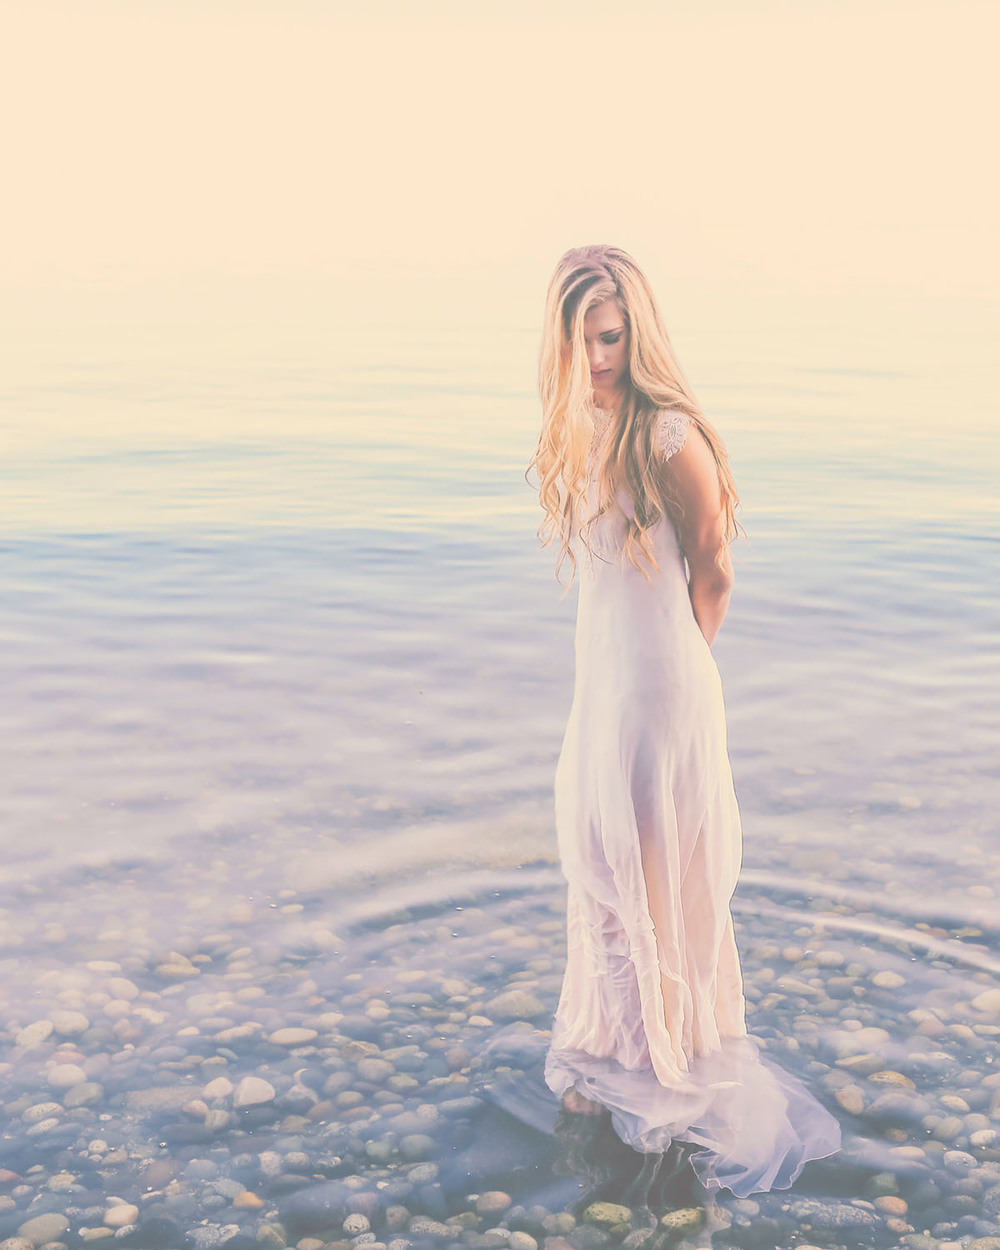 boho beach bridal shoot, jennifer picard photography, sunshine coast bc wedding photographer